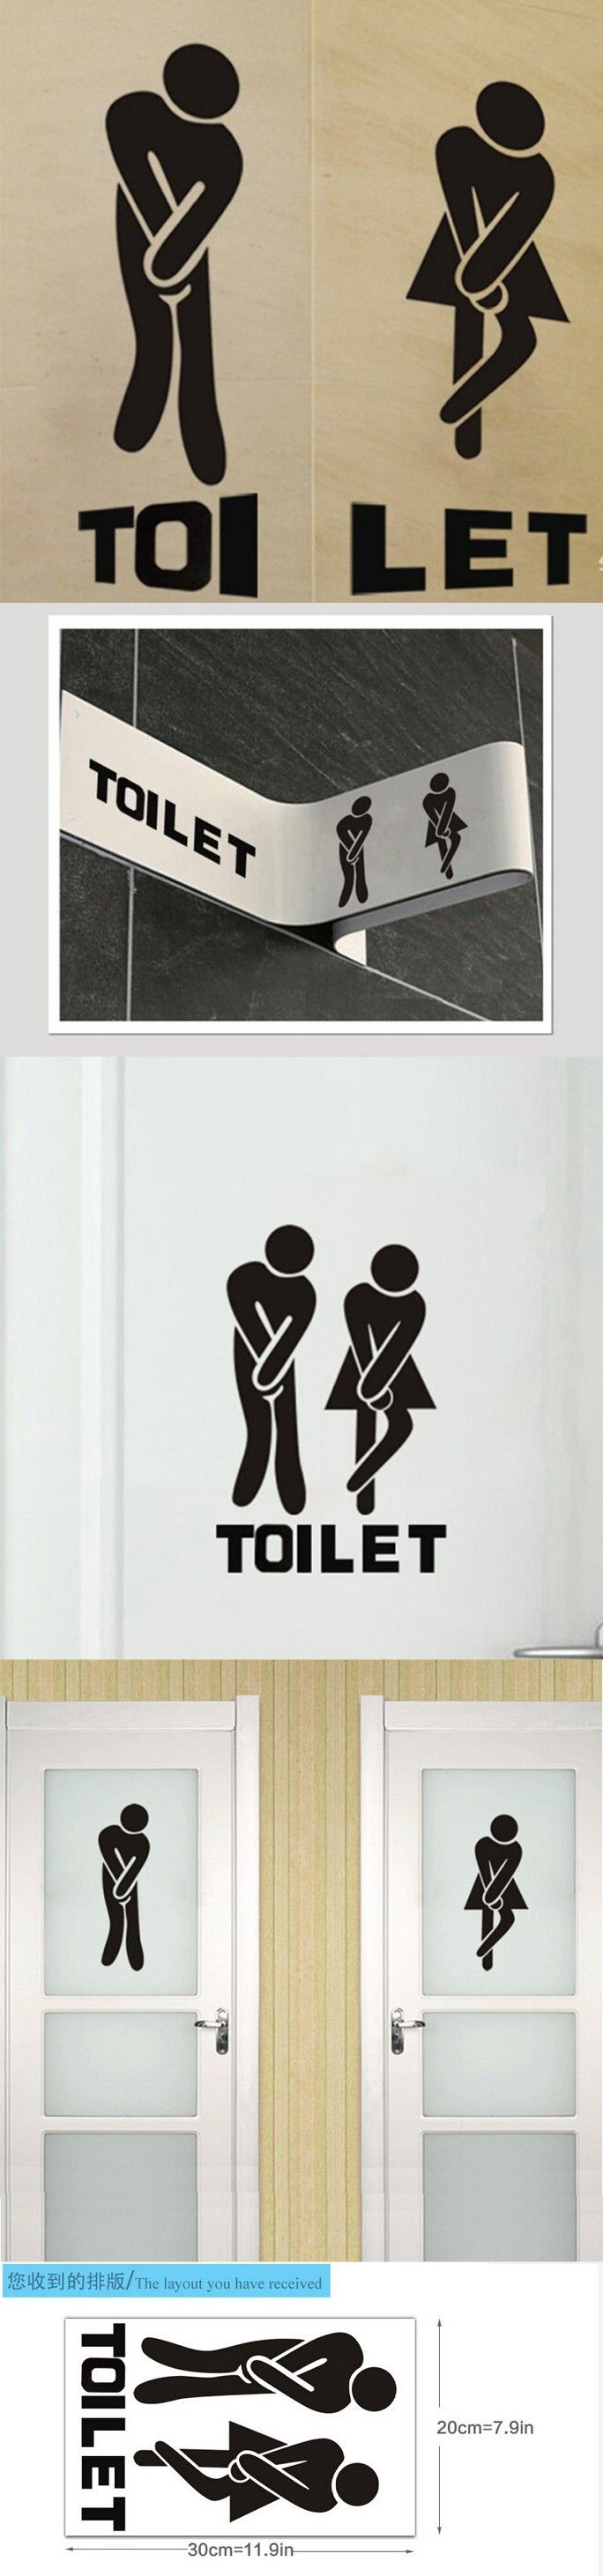 French Wall Stickers Funny Toilet Entrance Sign Sticker For France